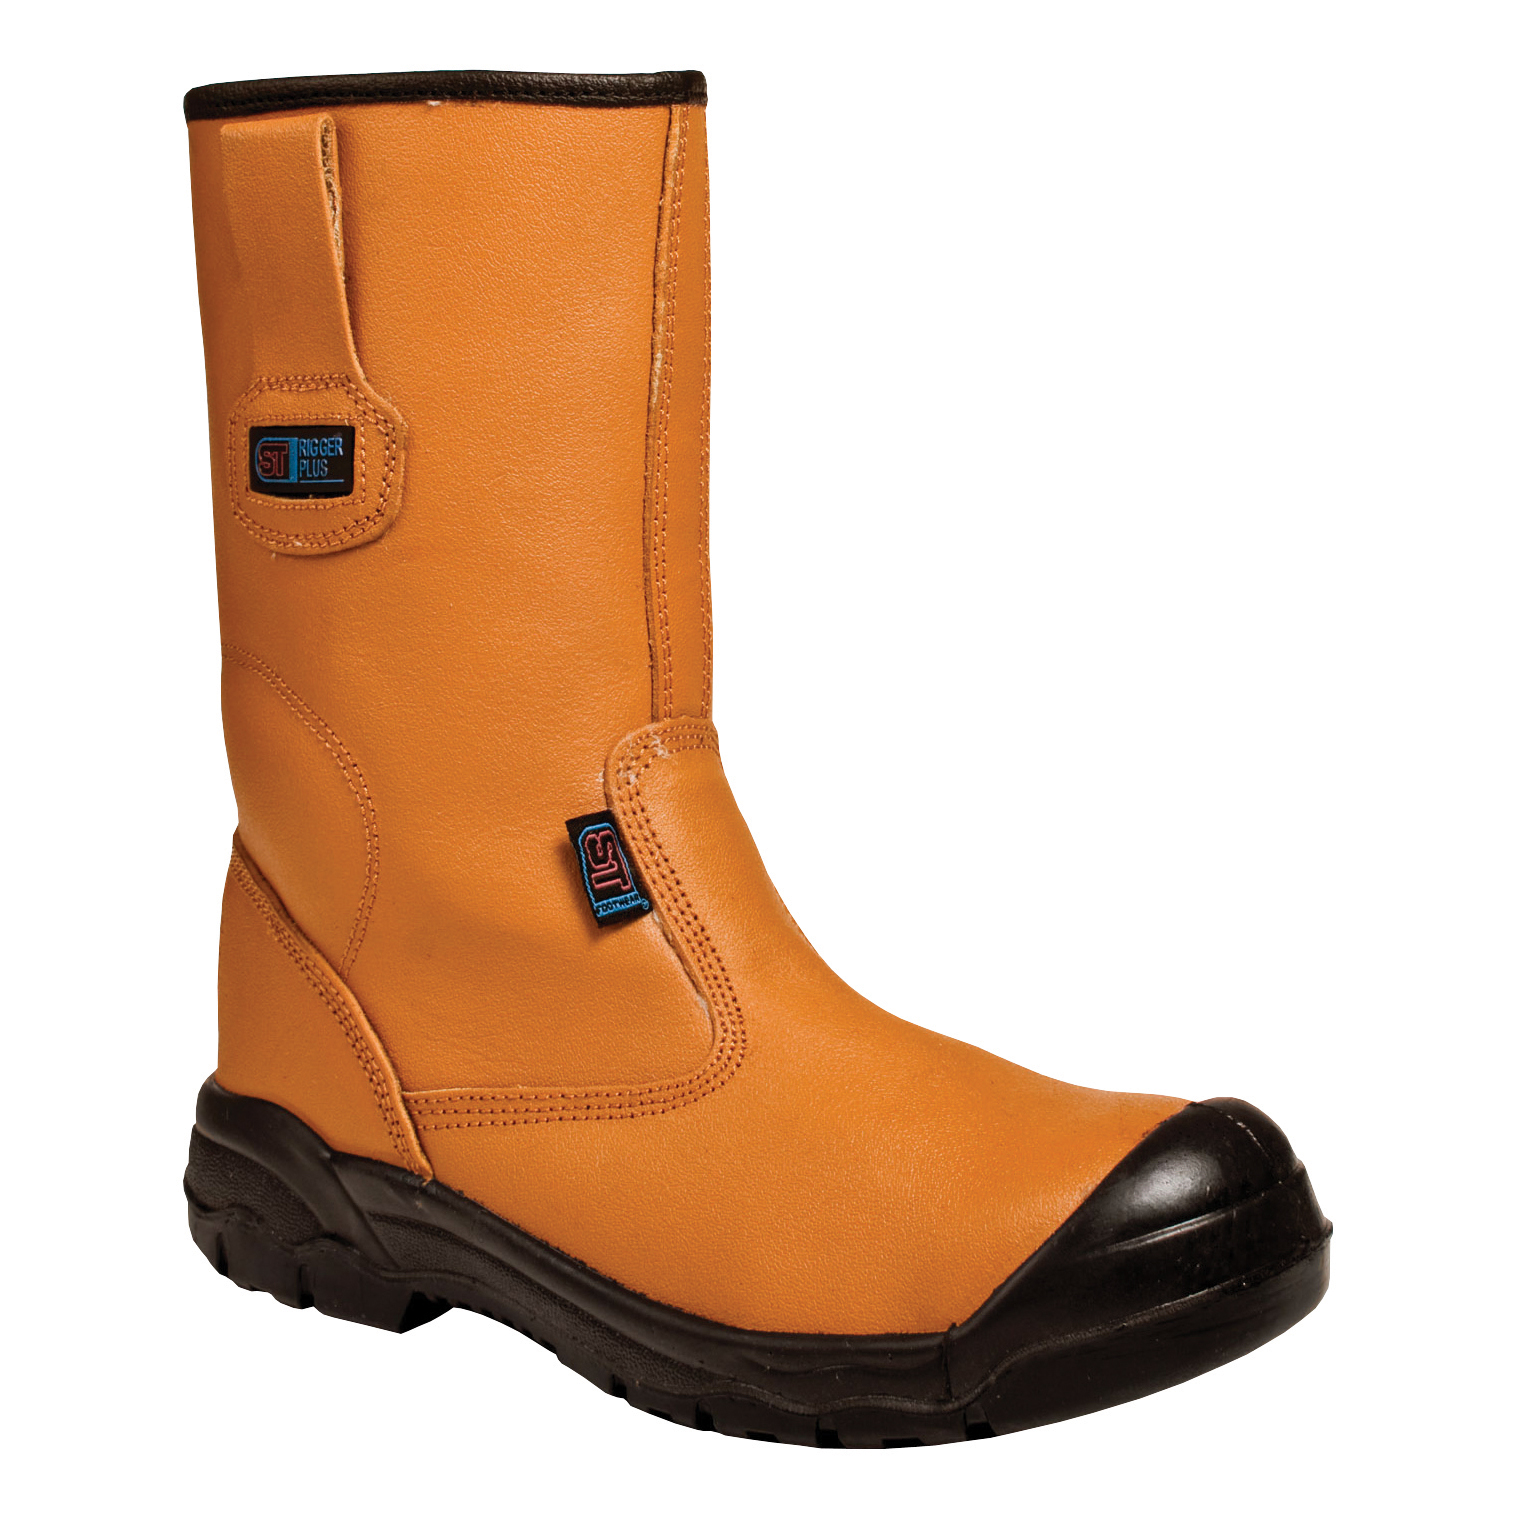 Supertouch Rigger Boot Plus Leather with Rubber Toecap Size 11 Tan Ref 90516 *Approx 3 Day Leadtime*